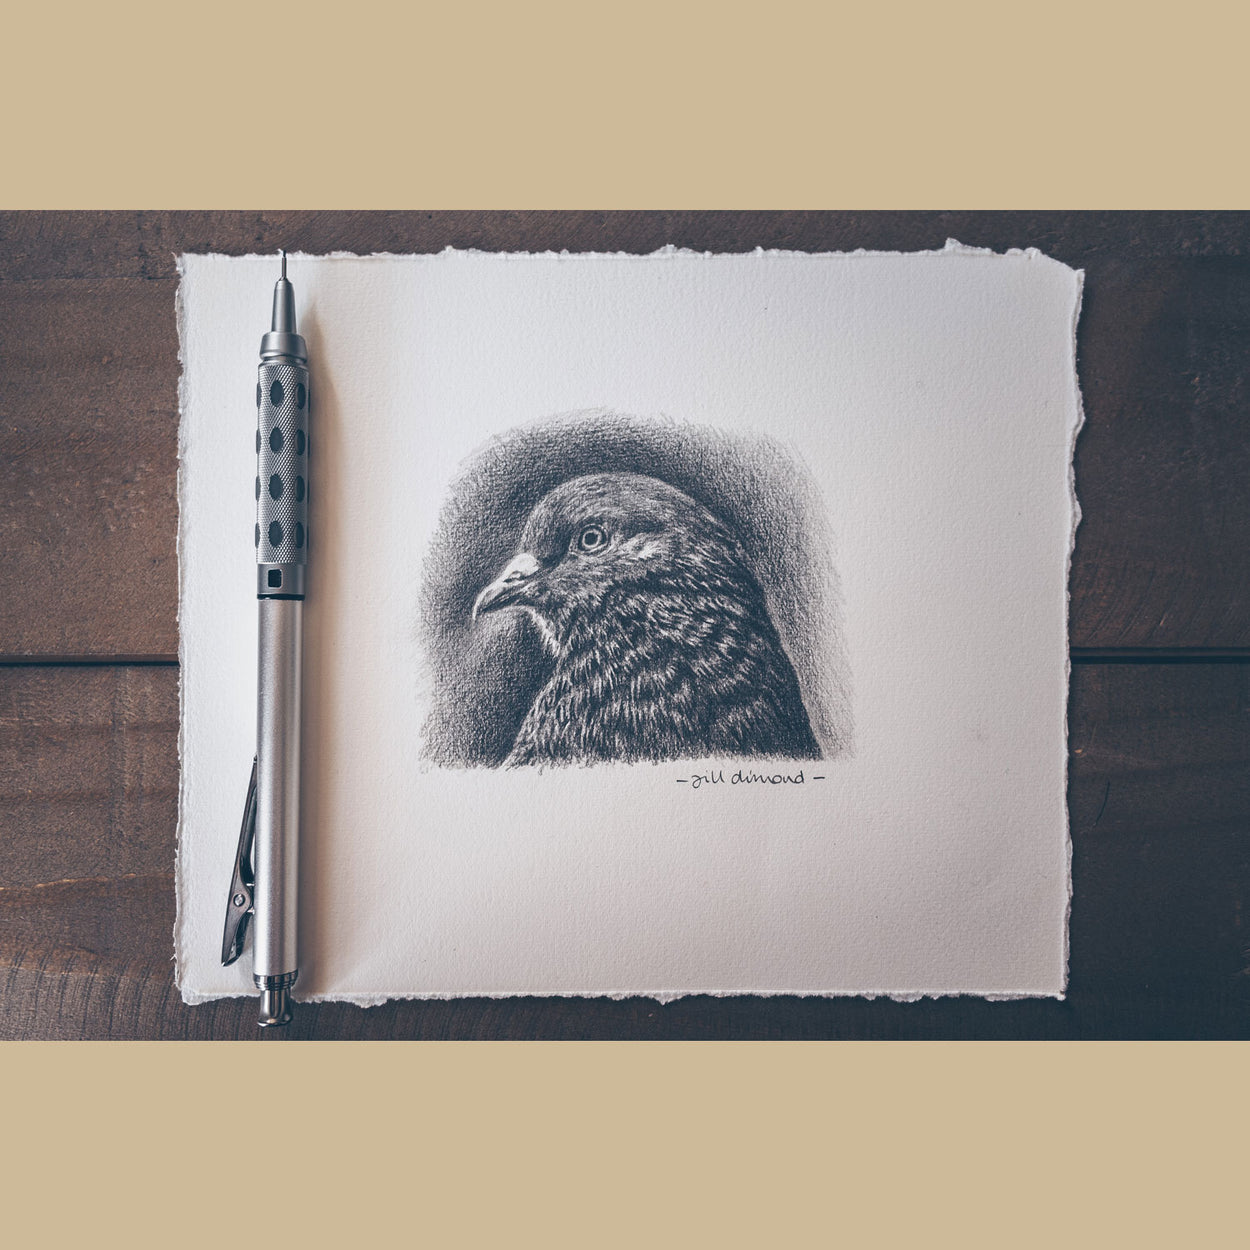 Pigeon Drawing on Table - The Thriving Wild